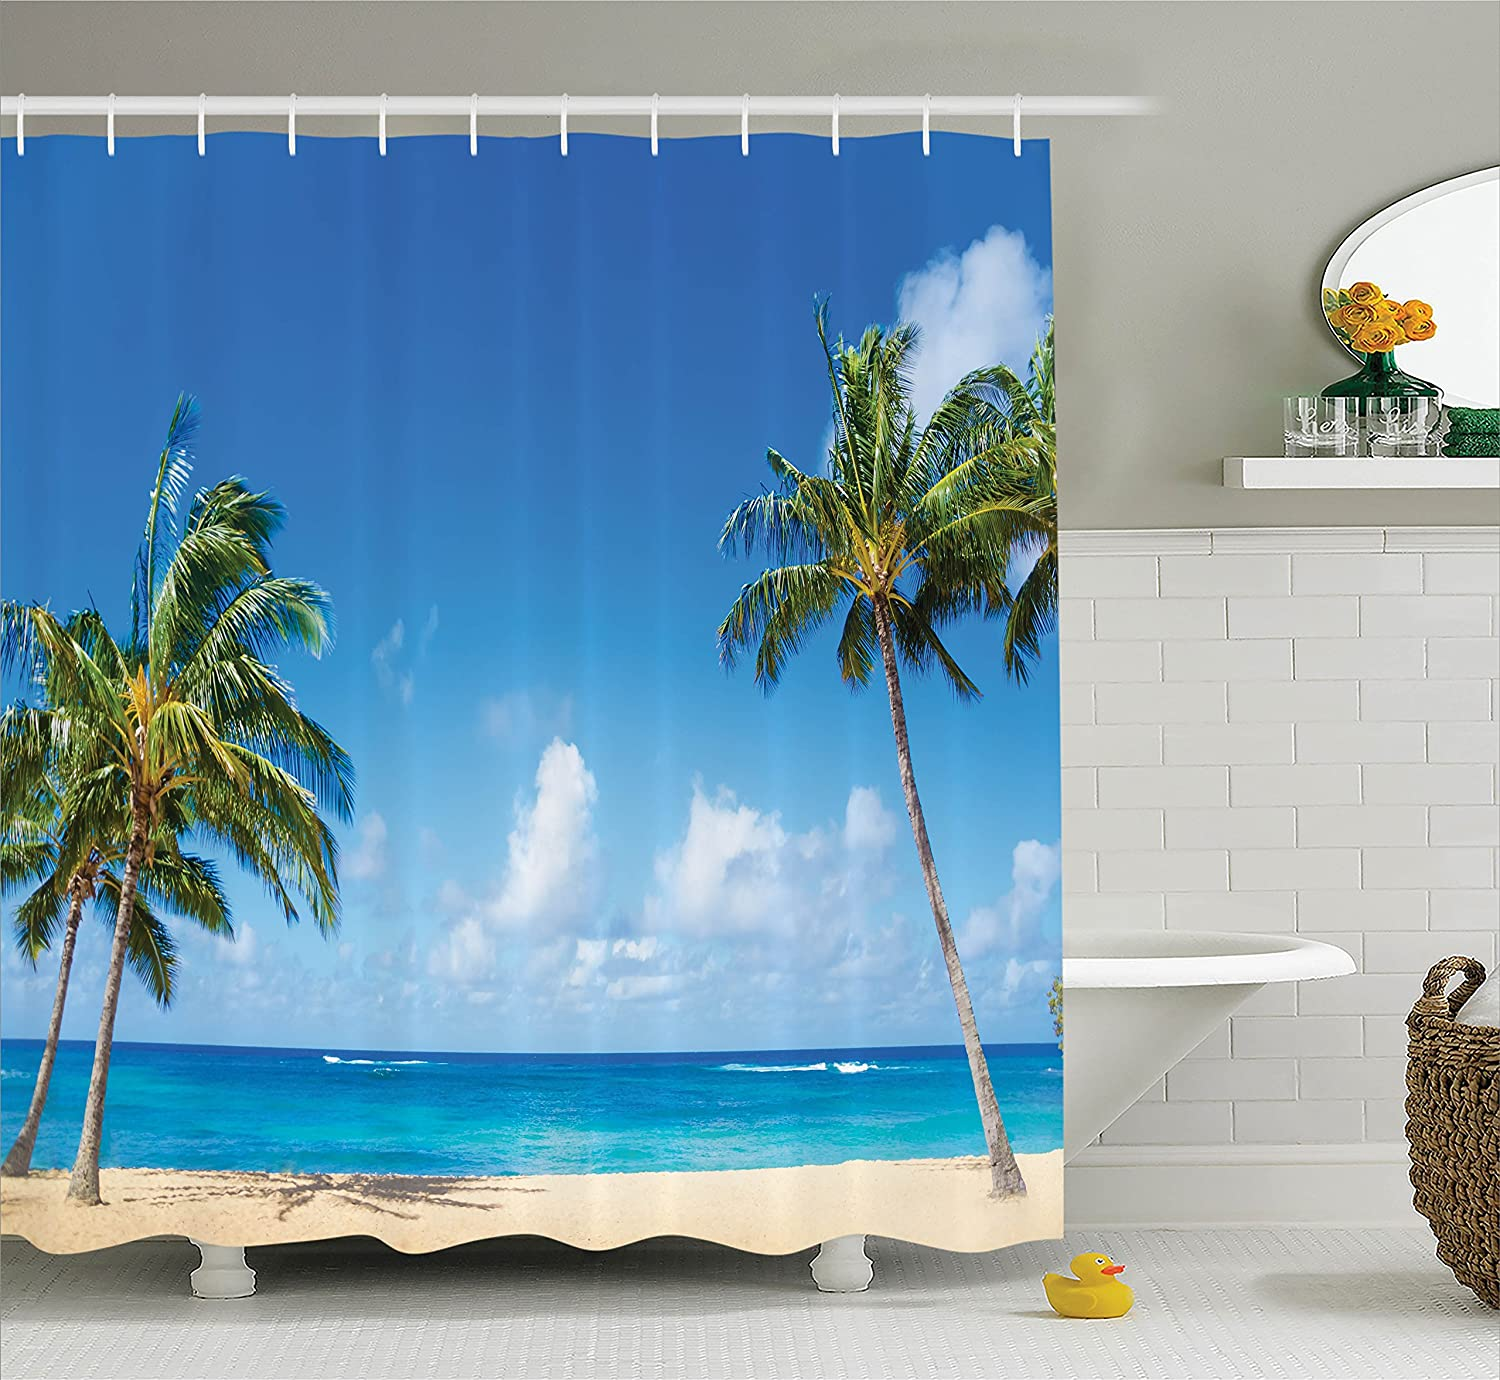 Ambesonne Hawaiian Decorations Collection, Windy Exotic Island with Tropical Trees Calm Beachy Theme Ocean Photography Print, Polyester Fabric Bathroom Shower Curtain Set with Hooks, Gray Green